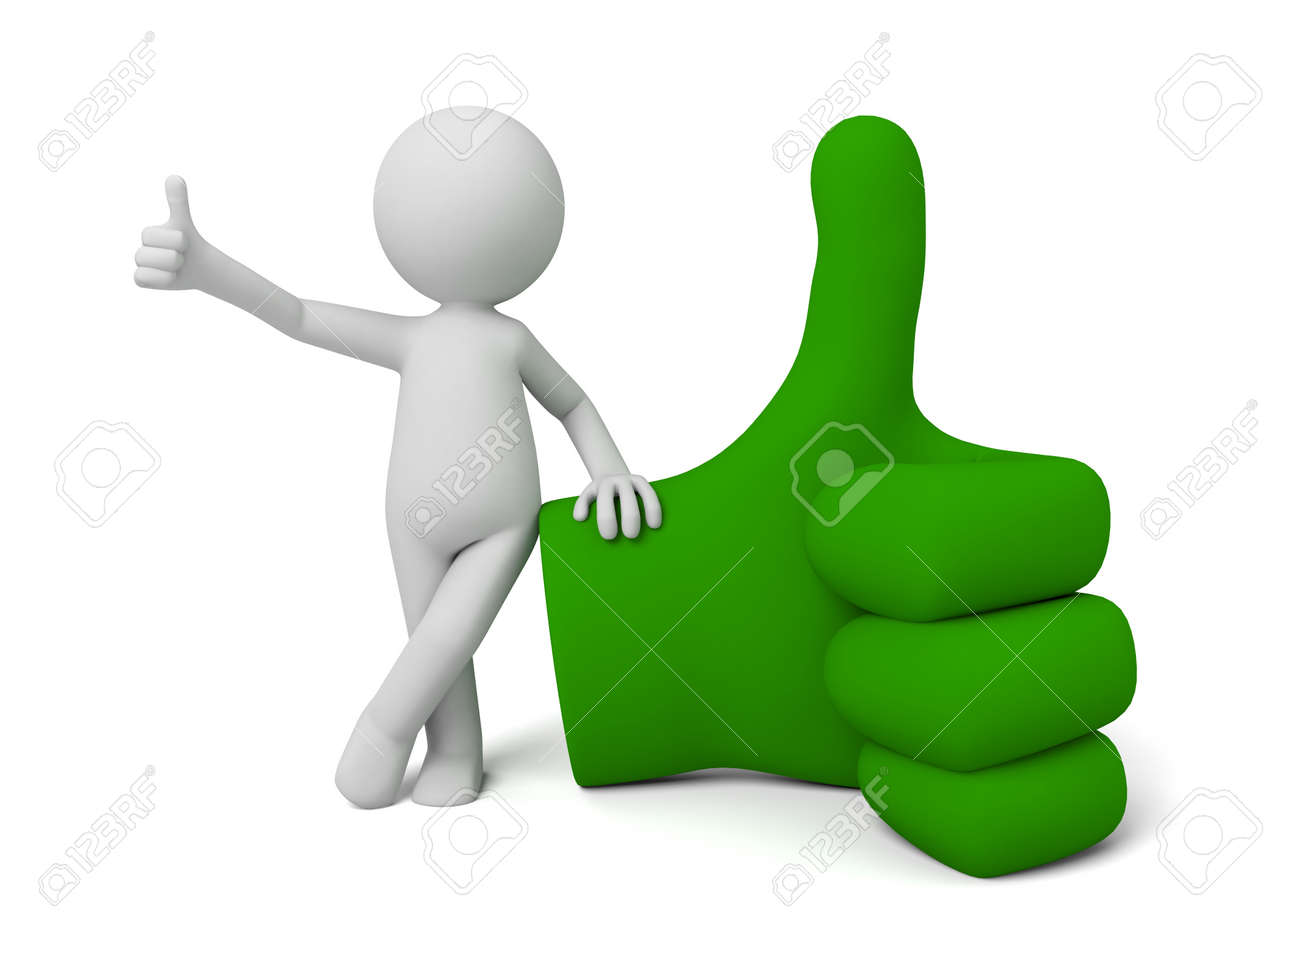 3d small people with a big green hand sign. 3d image. Isolated white background. - 36023369